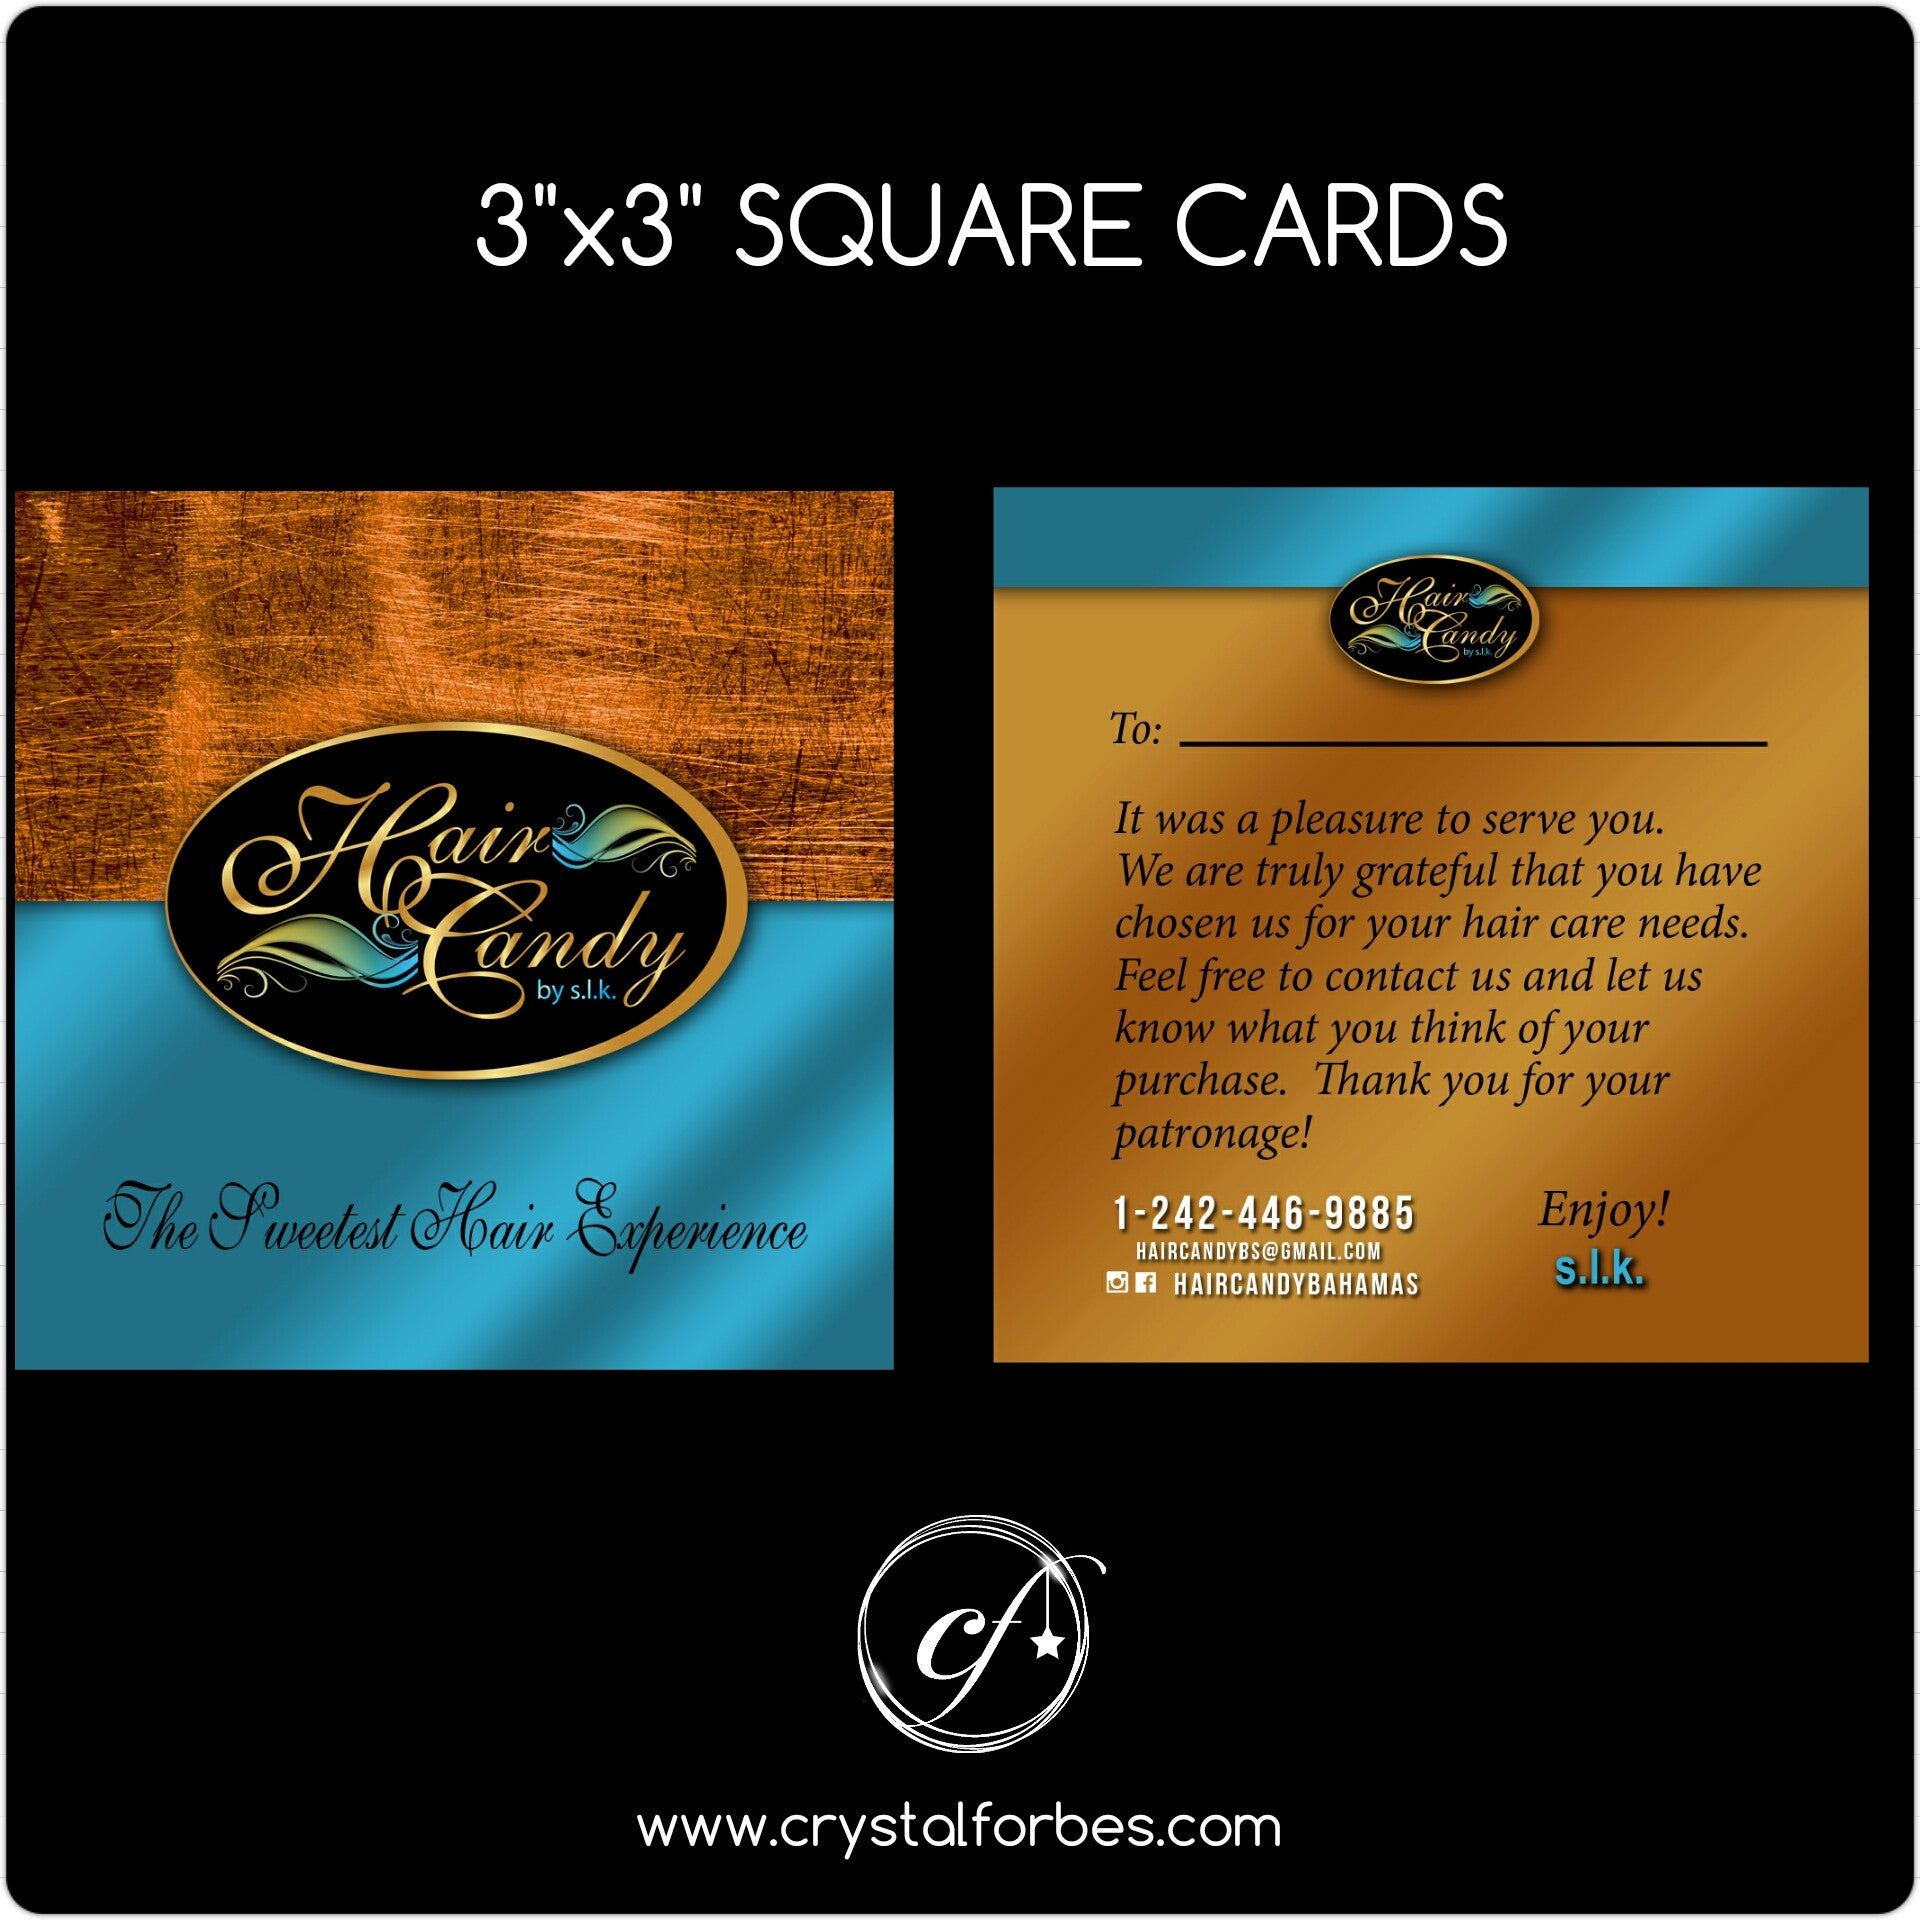 "3"" x 3"" Square Shaped Cards"